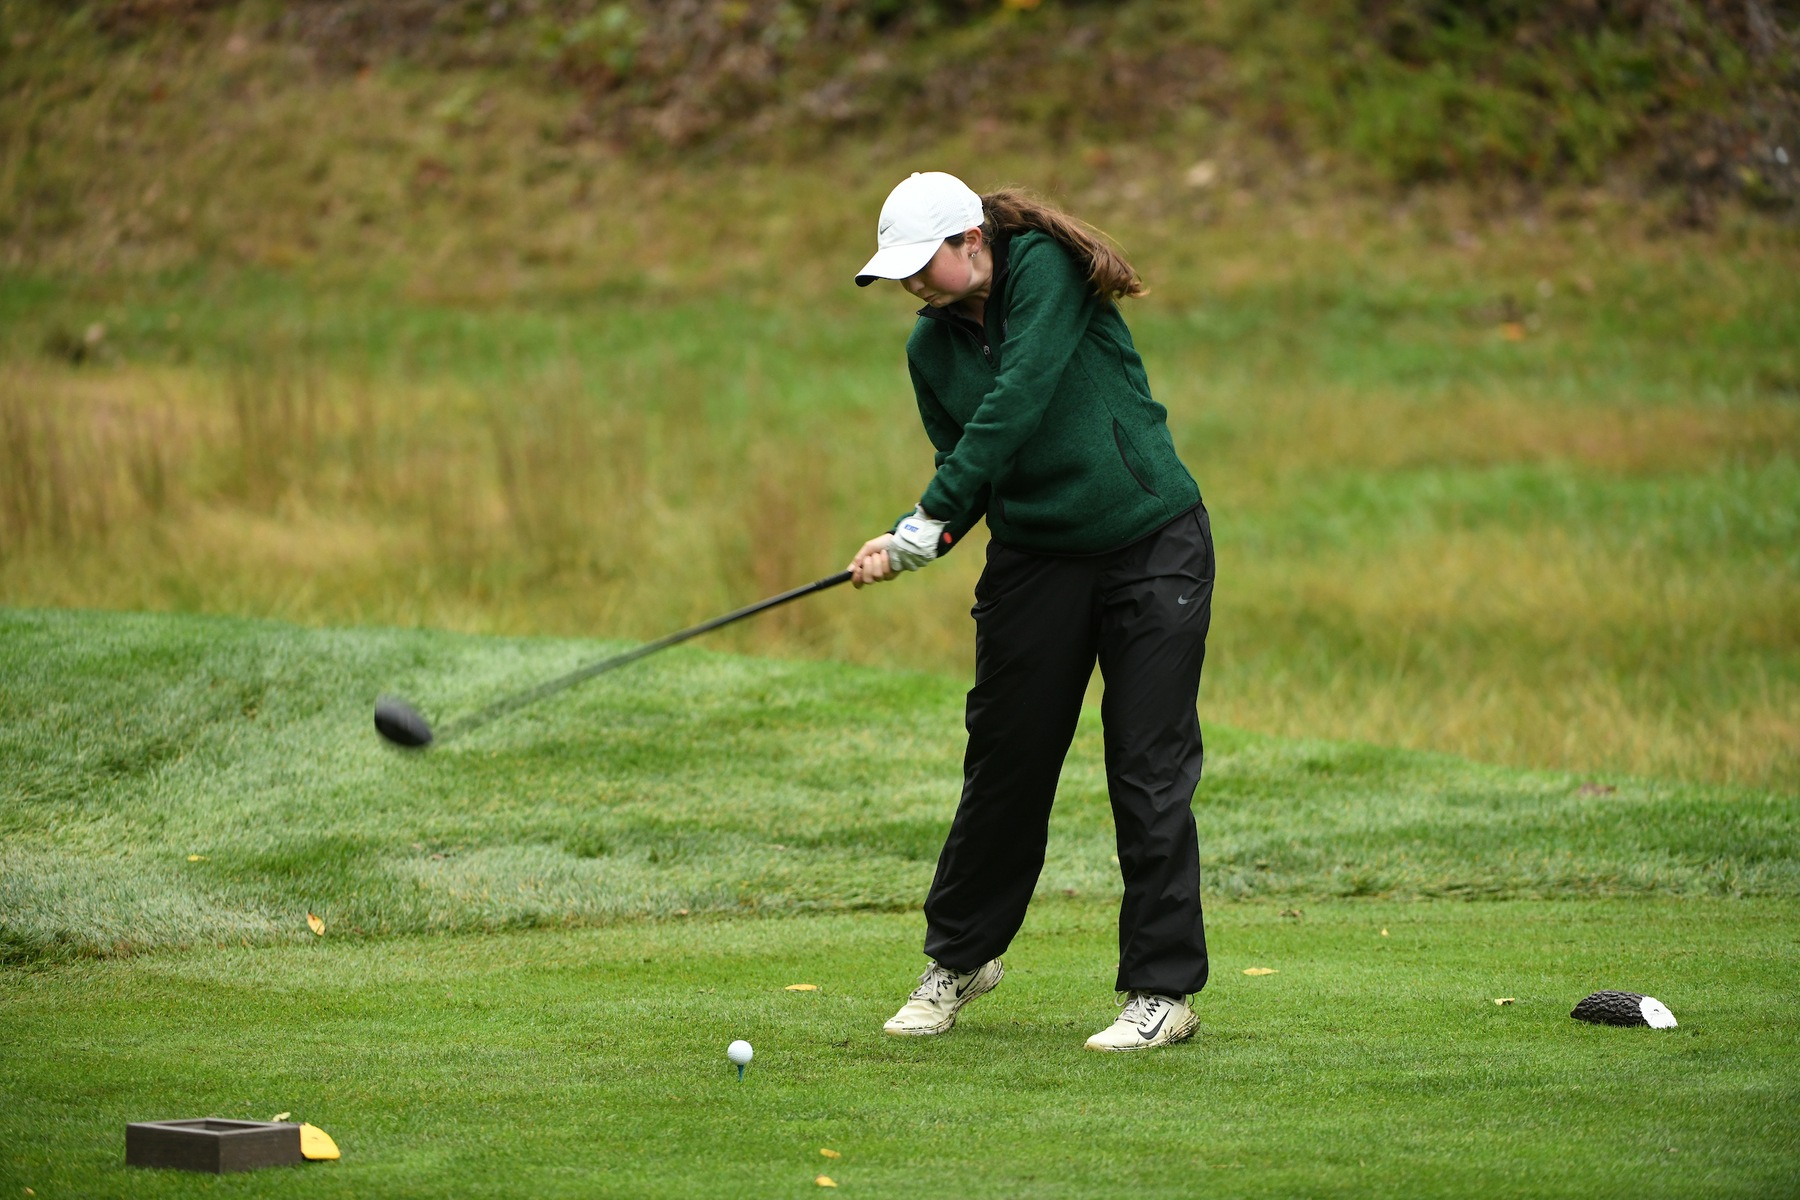 Mustangs Take Second, Perez Fourth at Greene Turtle Invite